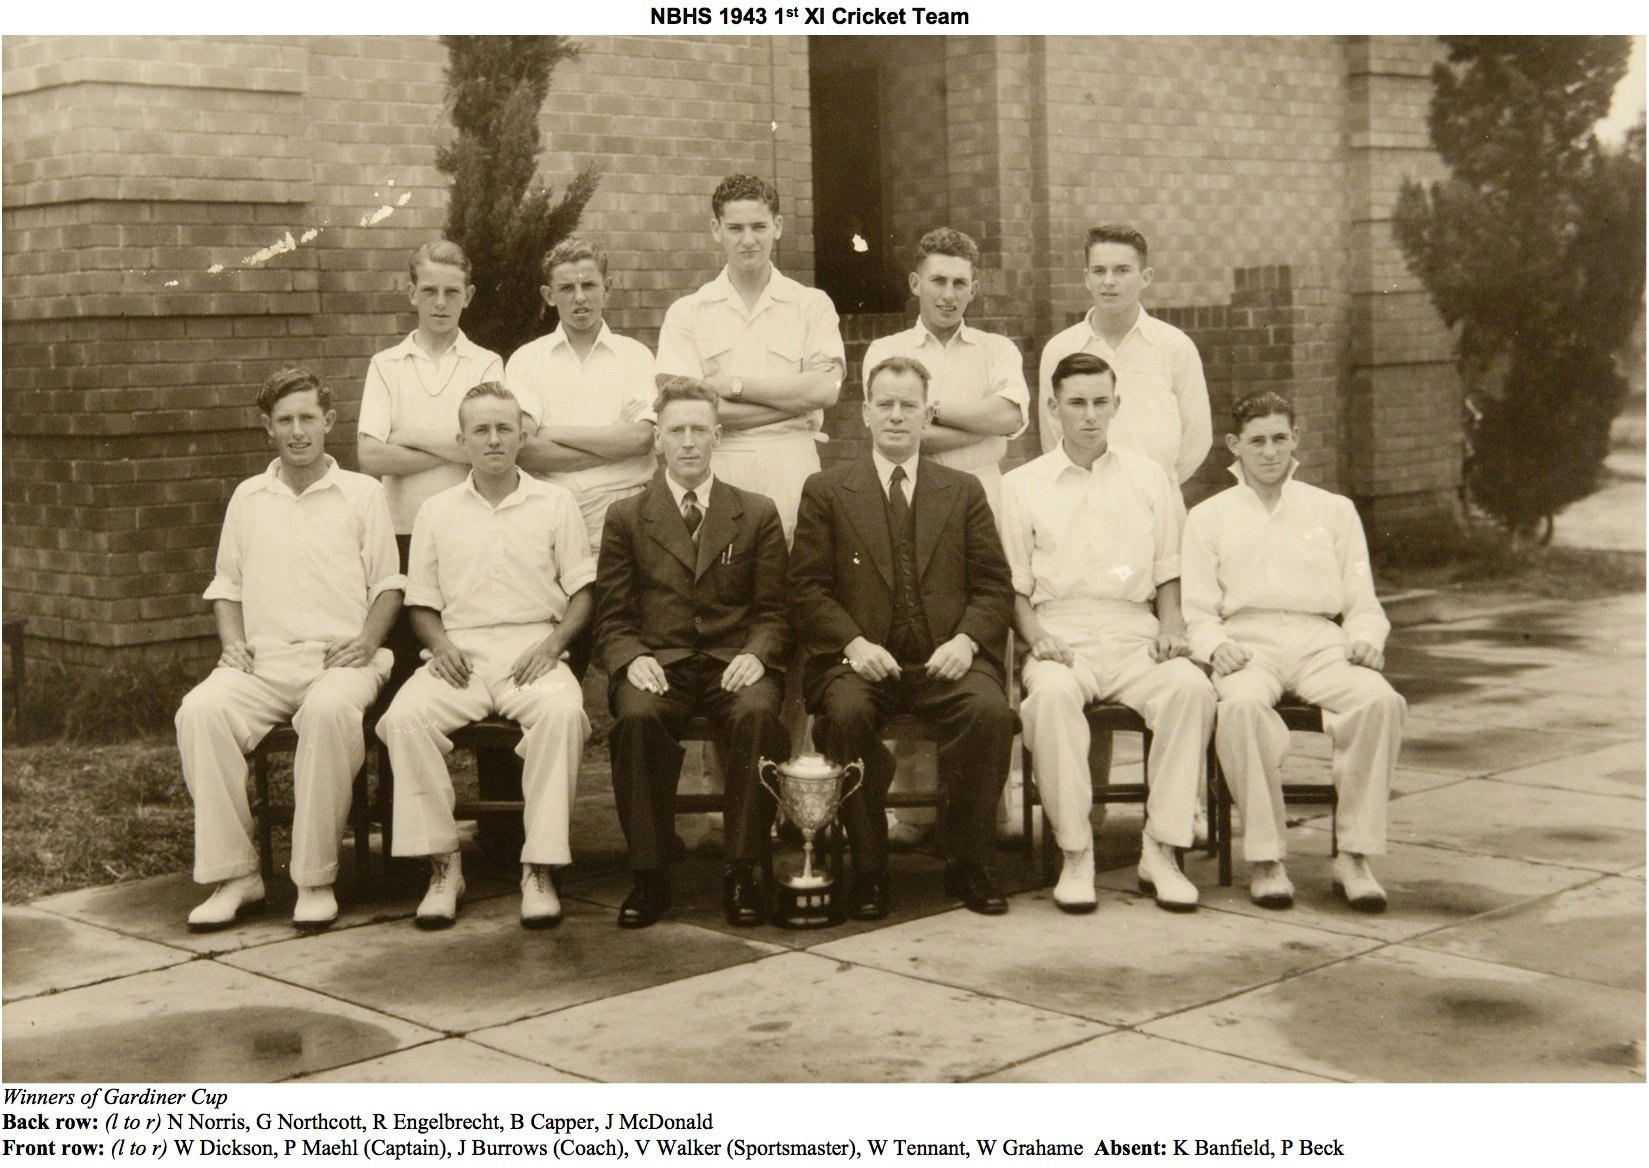 1943 1st XI Cricket Team